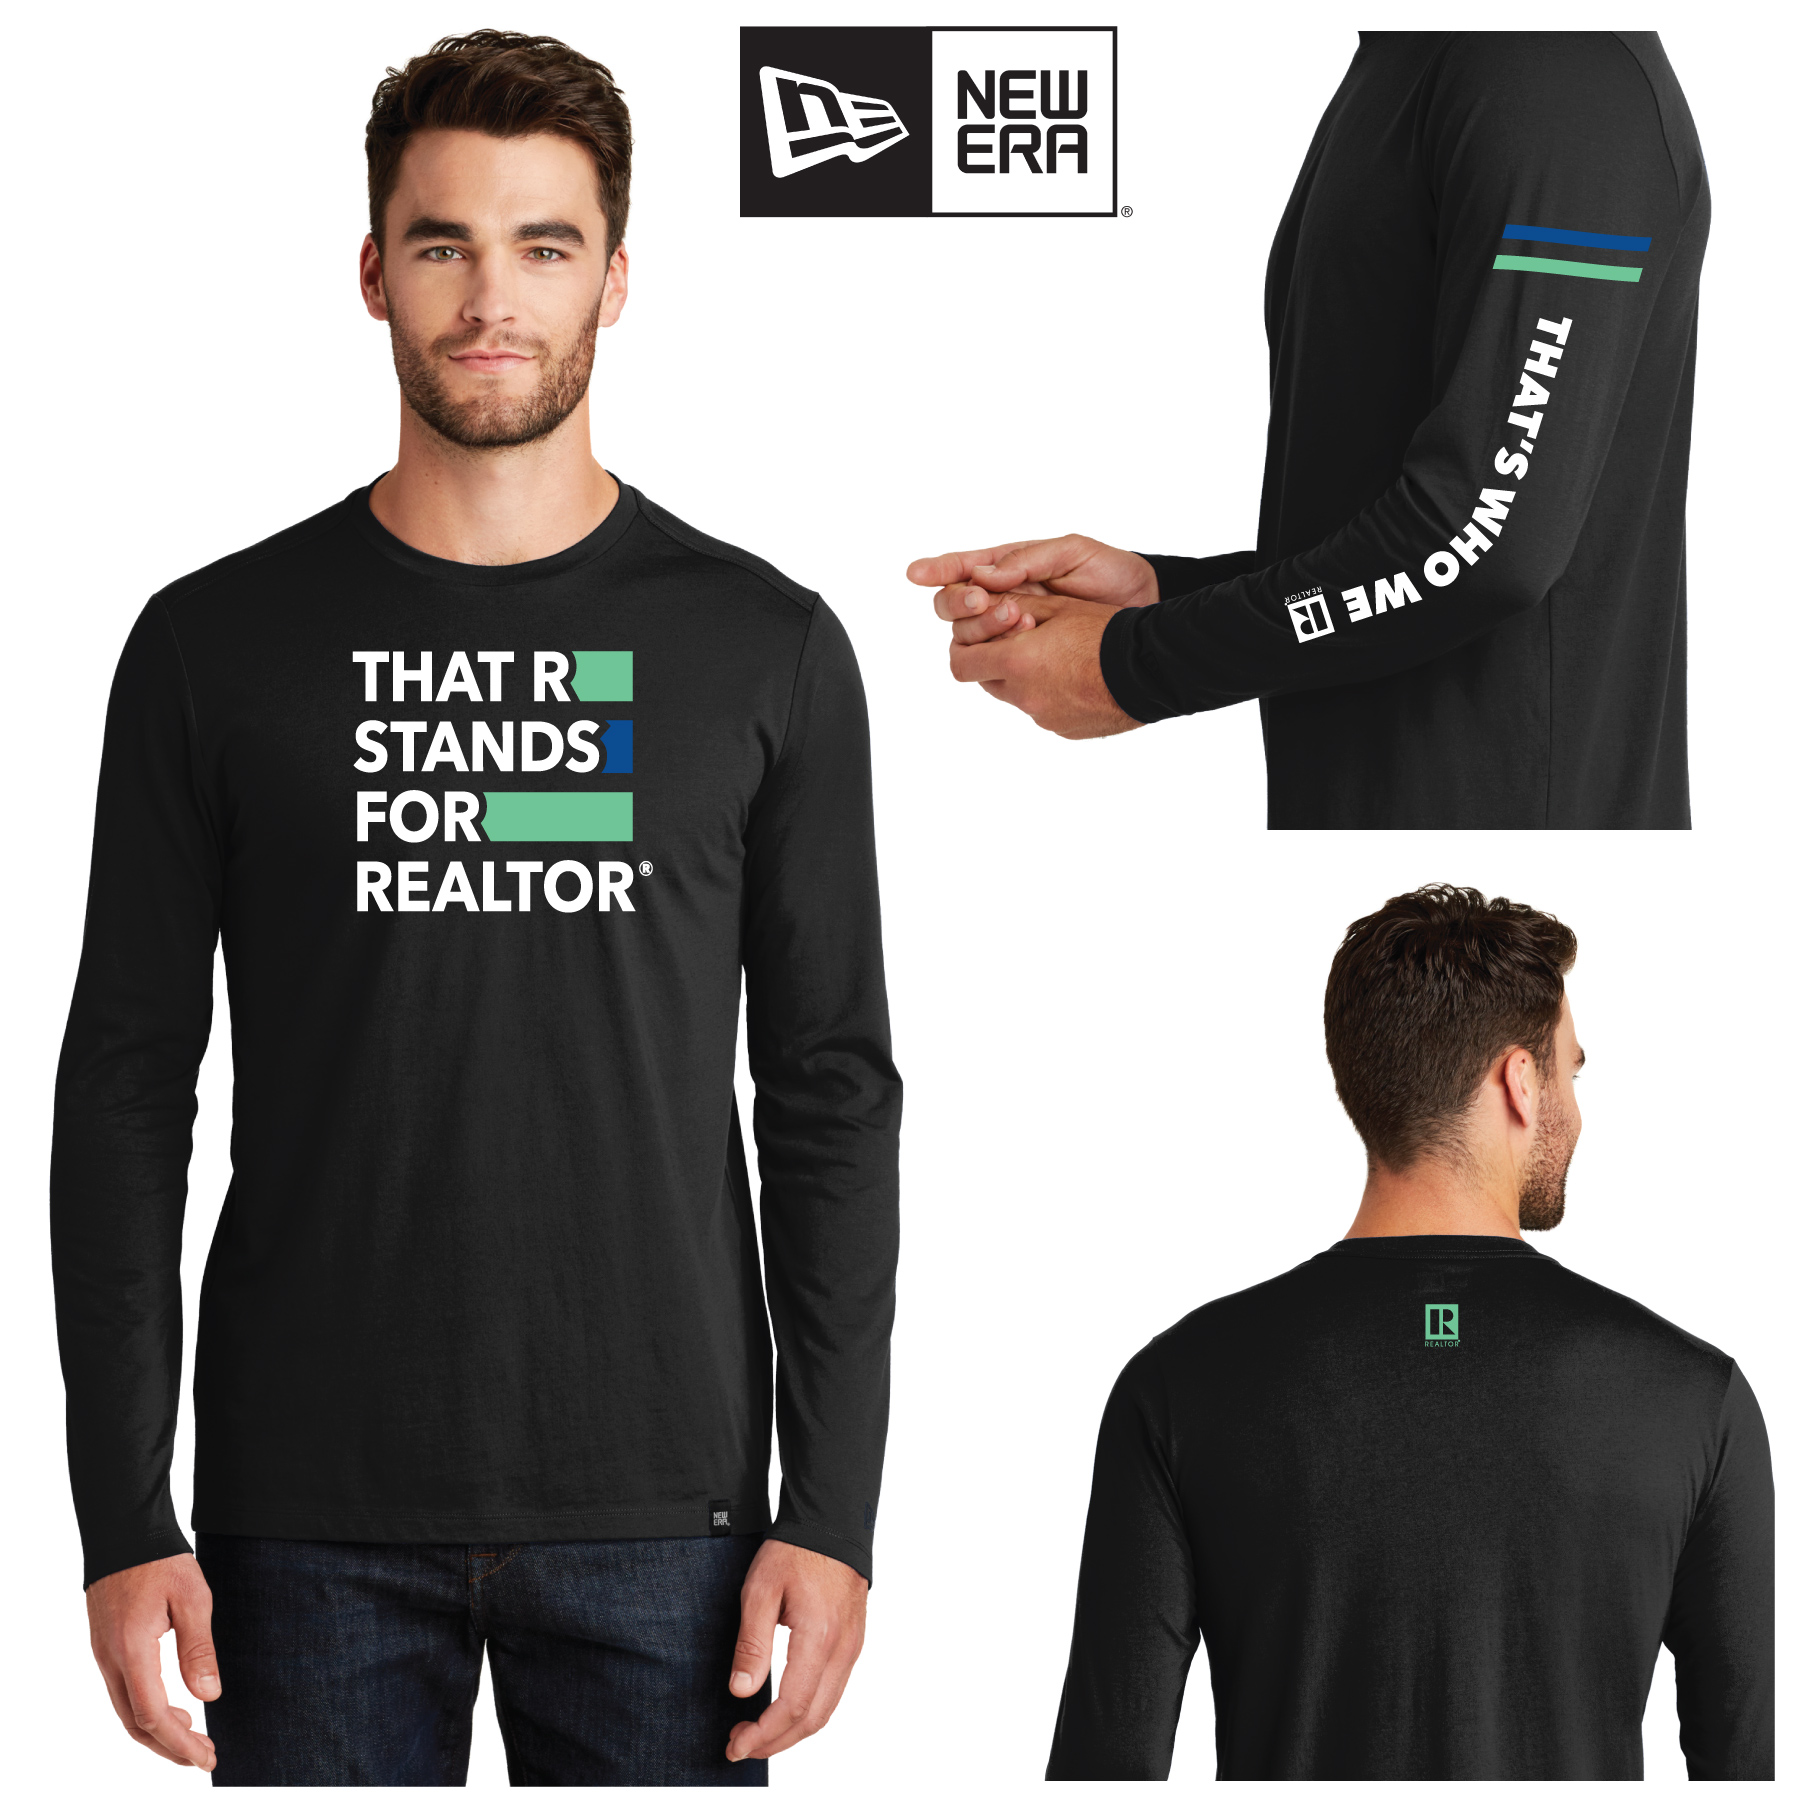 """That R Stands for REALTOR®"" Long Sleeve New Era® Tee Shirt twwr,ThatsWhoWeR,Thats,TWWR,ThatWho,ThatsWho,Twwr,Thats,Whos,We,Ares,Tees,T-shirt,Tee,Casual,Values,Tees,NewEra,Longs,Sleeves"